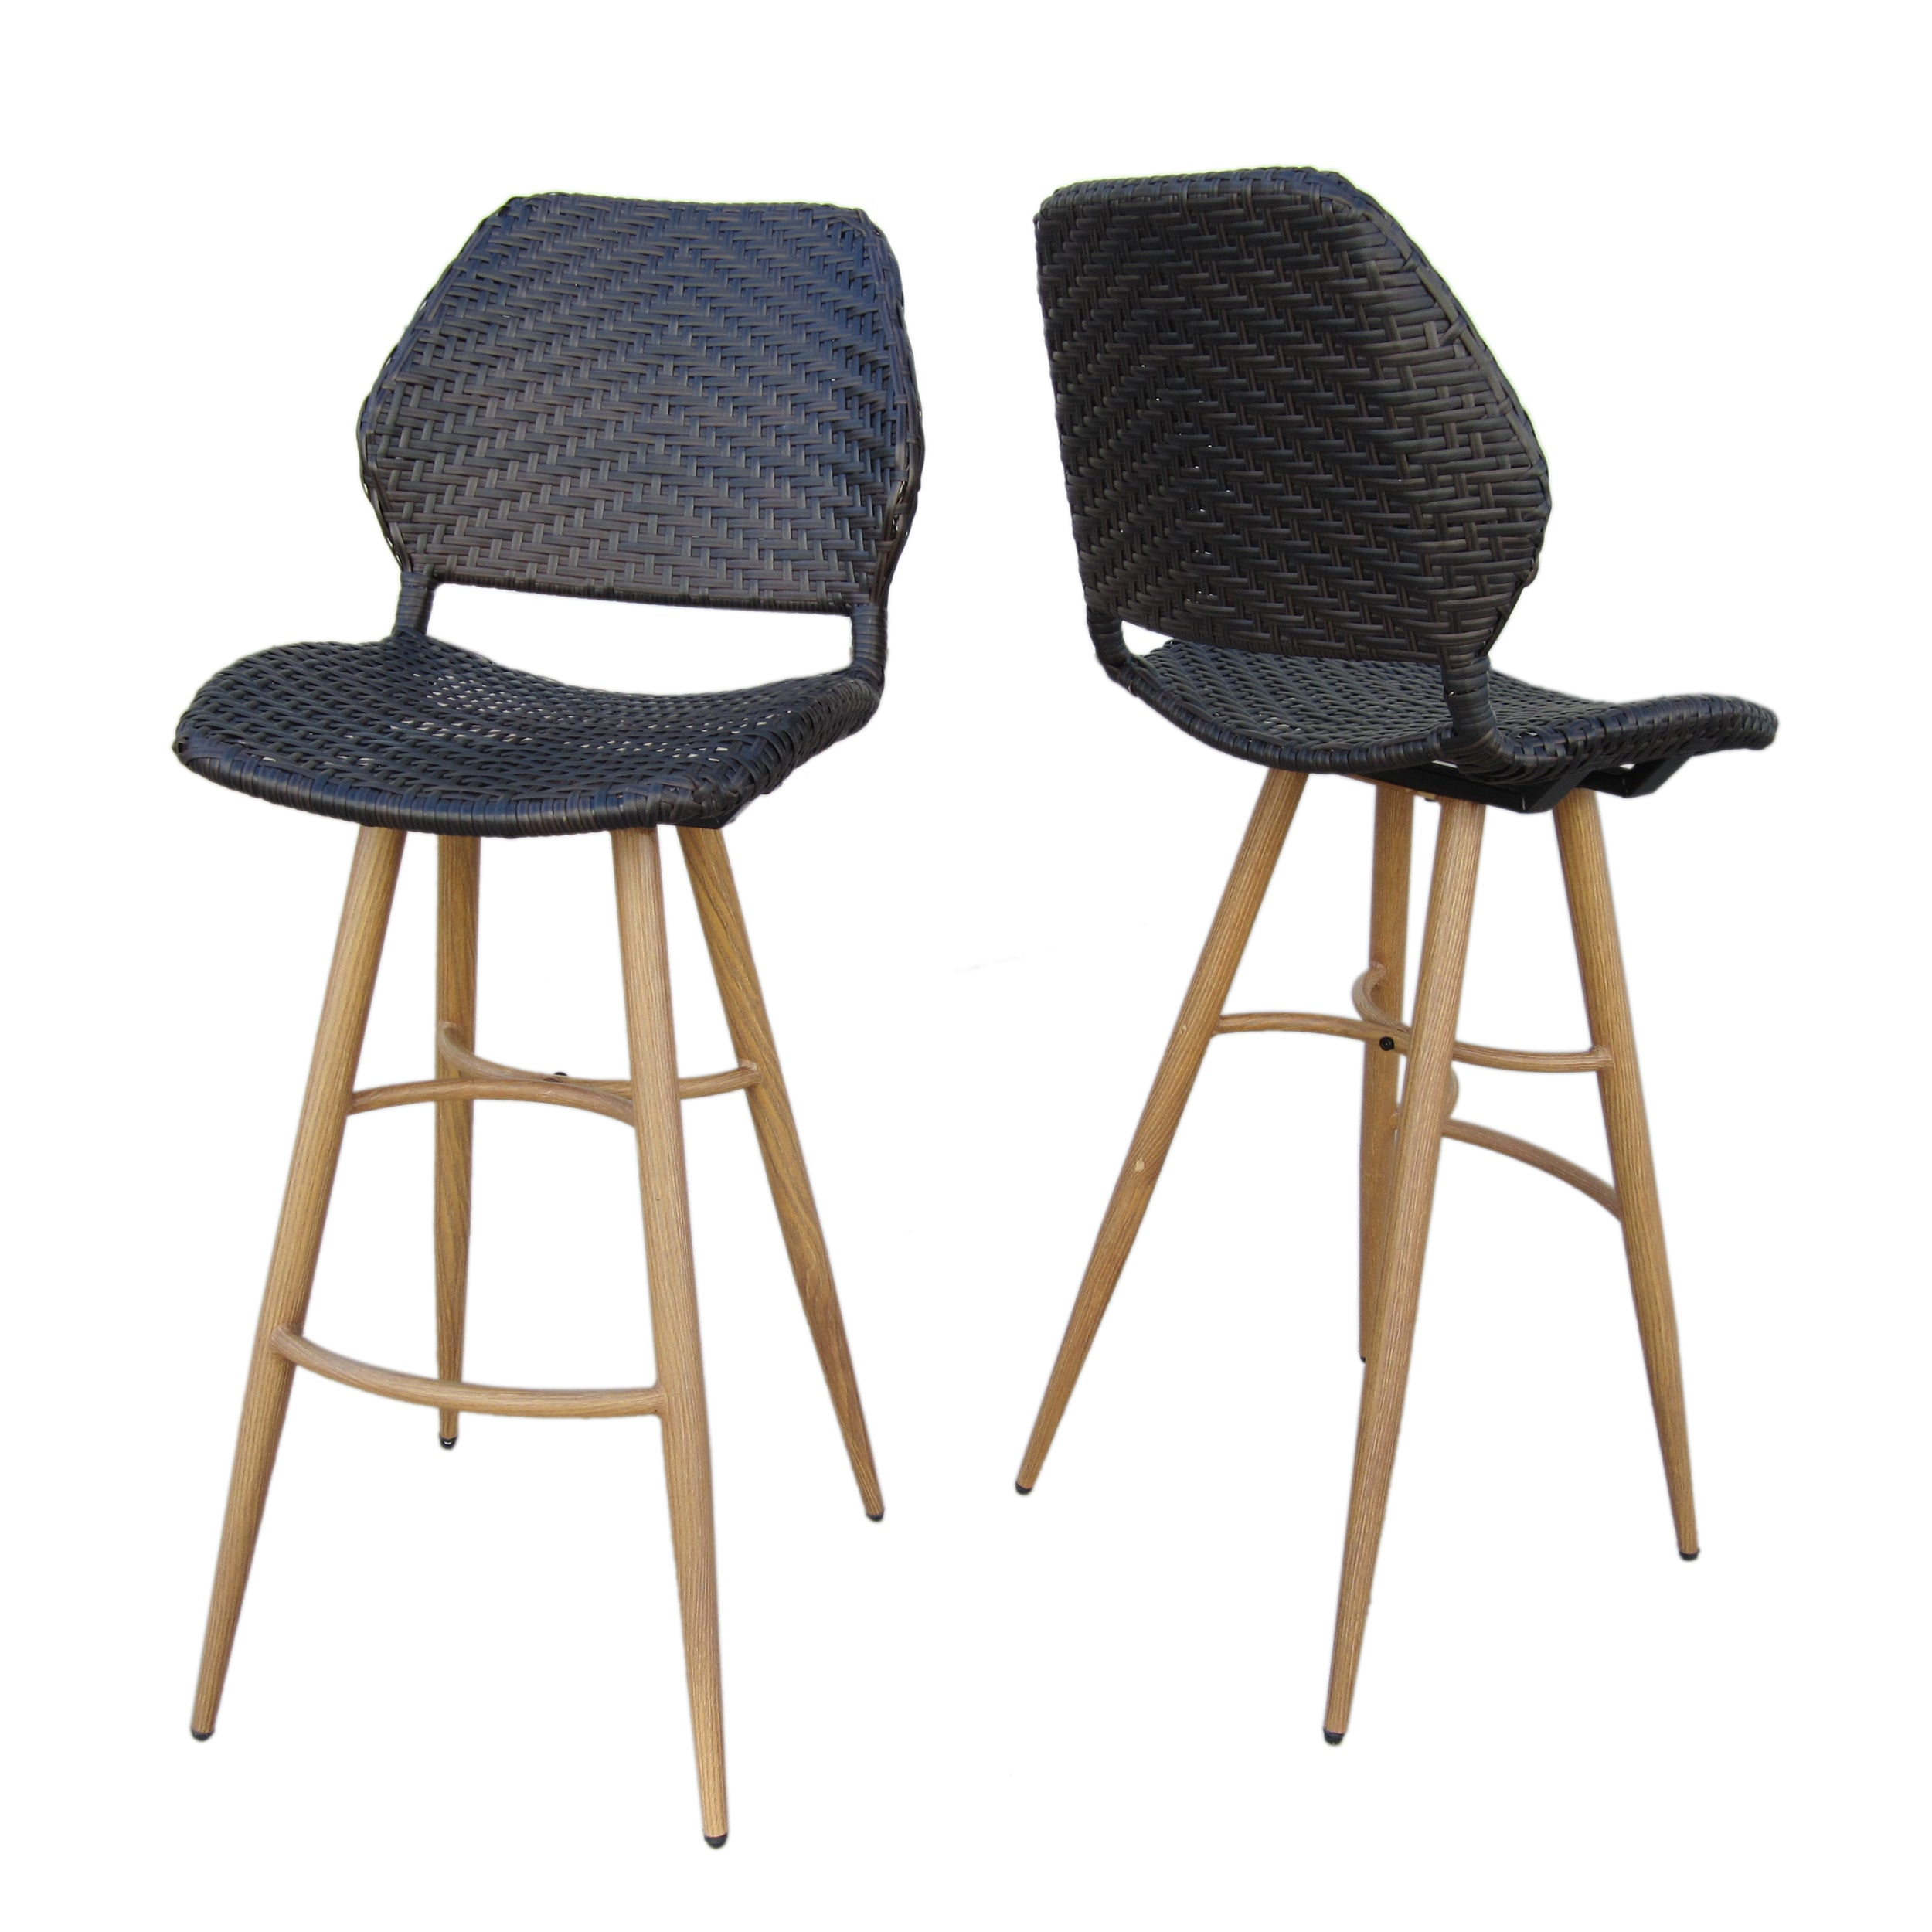 Amaya Outdoor Multi brown Wicker Barstools with Brown Wood Finish Metal Leg